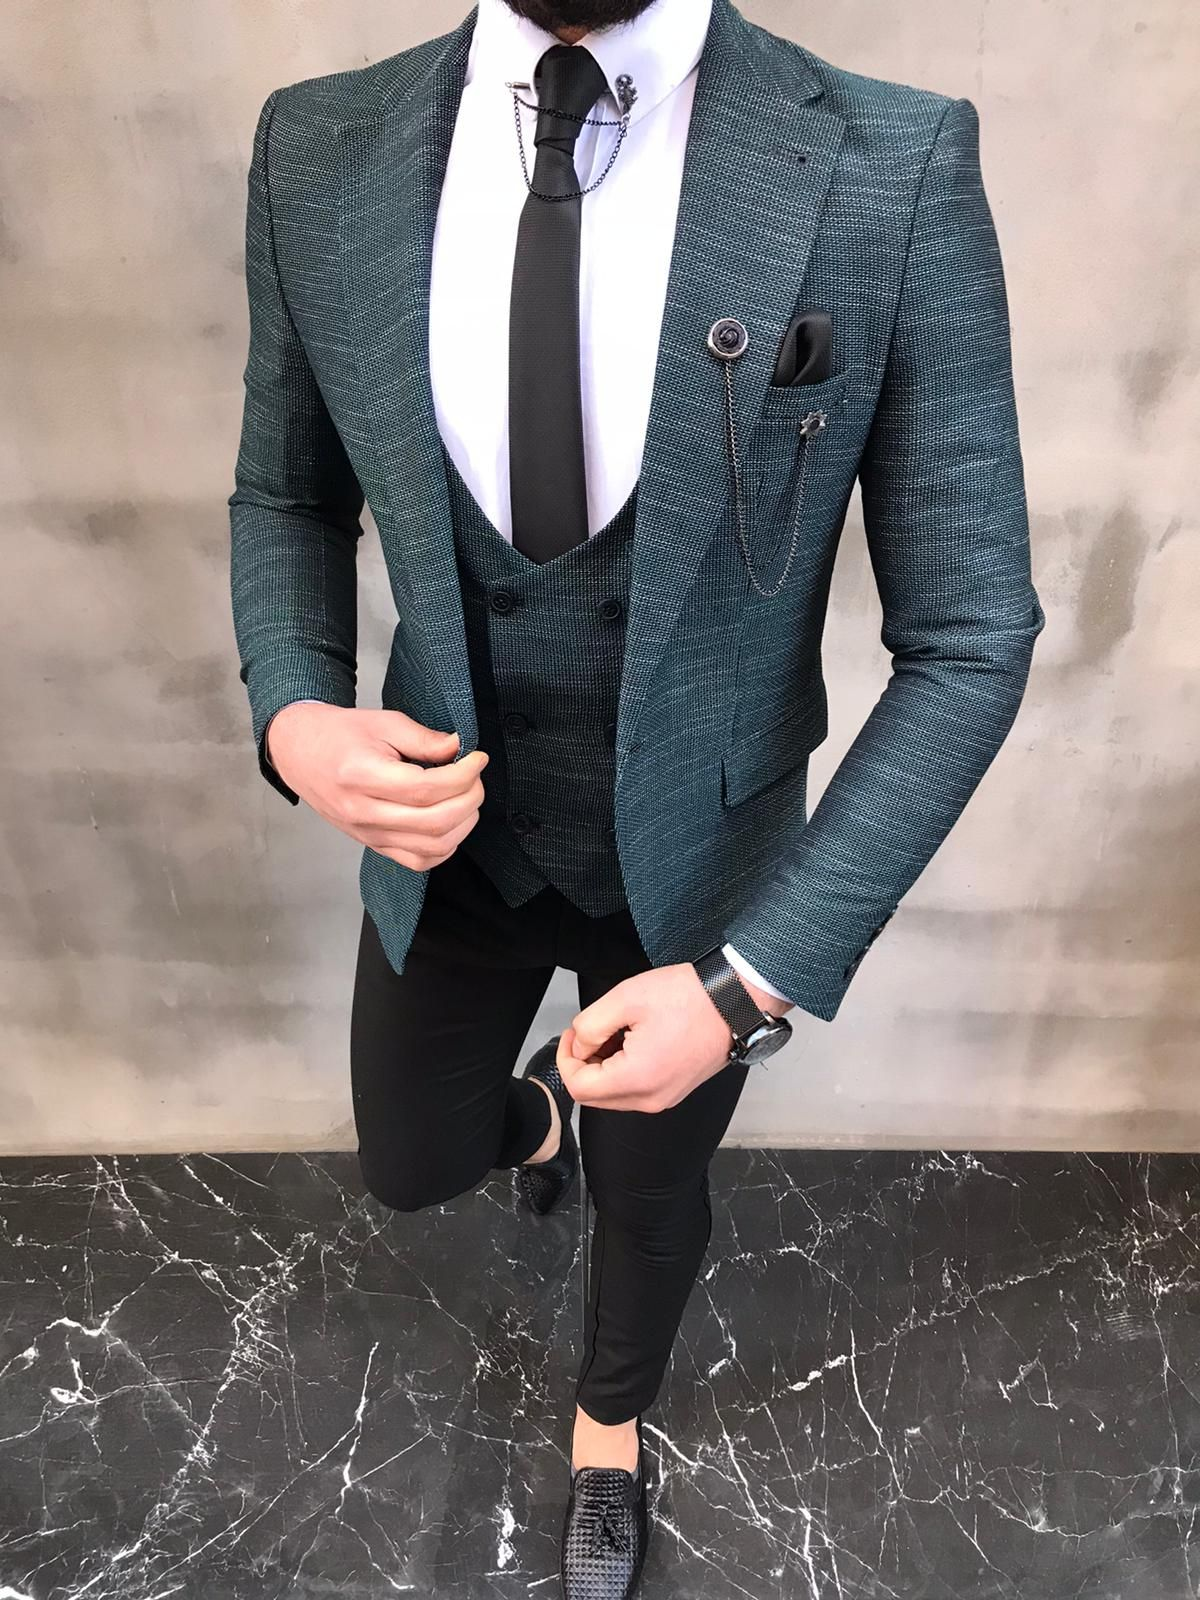 Sedona Green Slim Fit Crosshatch Suit Bespoke Daily In 2020 Fashion Suits For Men Mens Fashion Suits Smart Casual Menswear